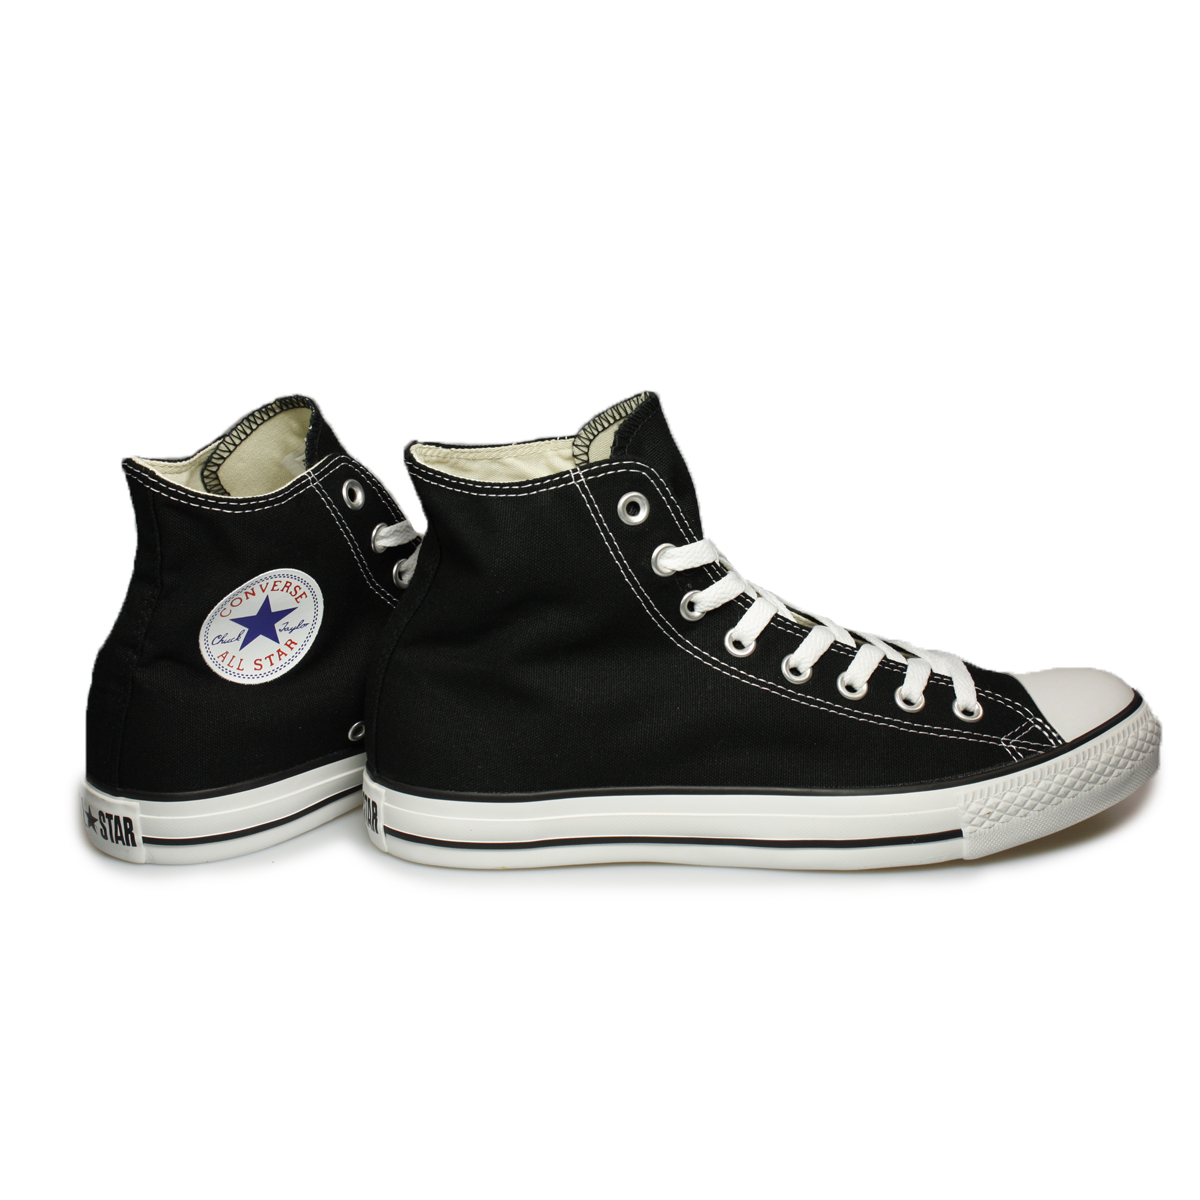 Converse Leather Shoes Low Top